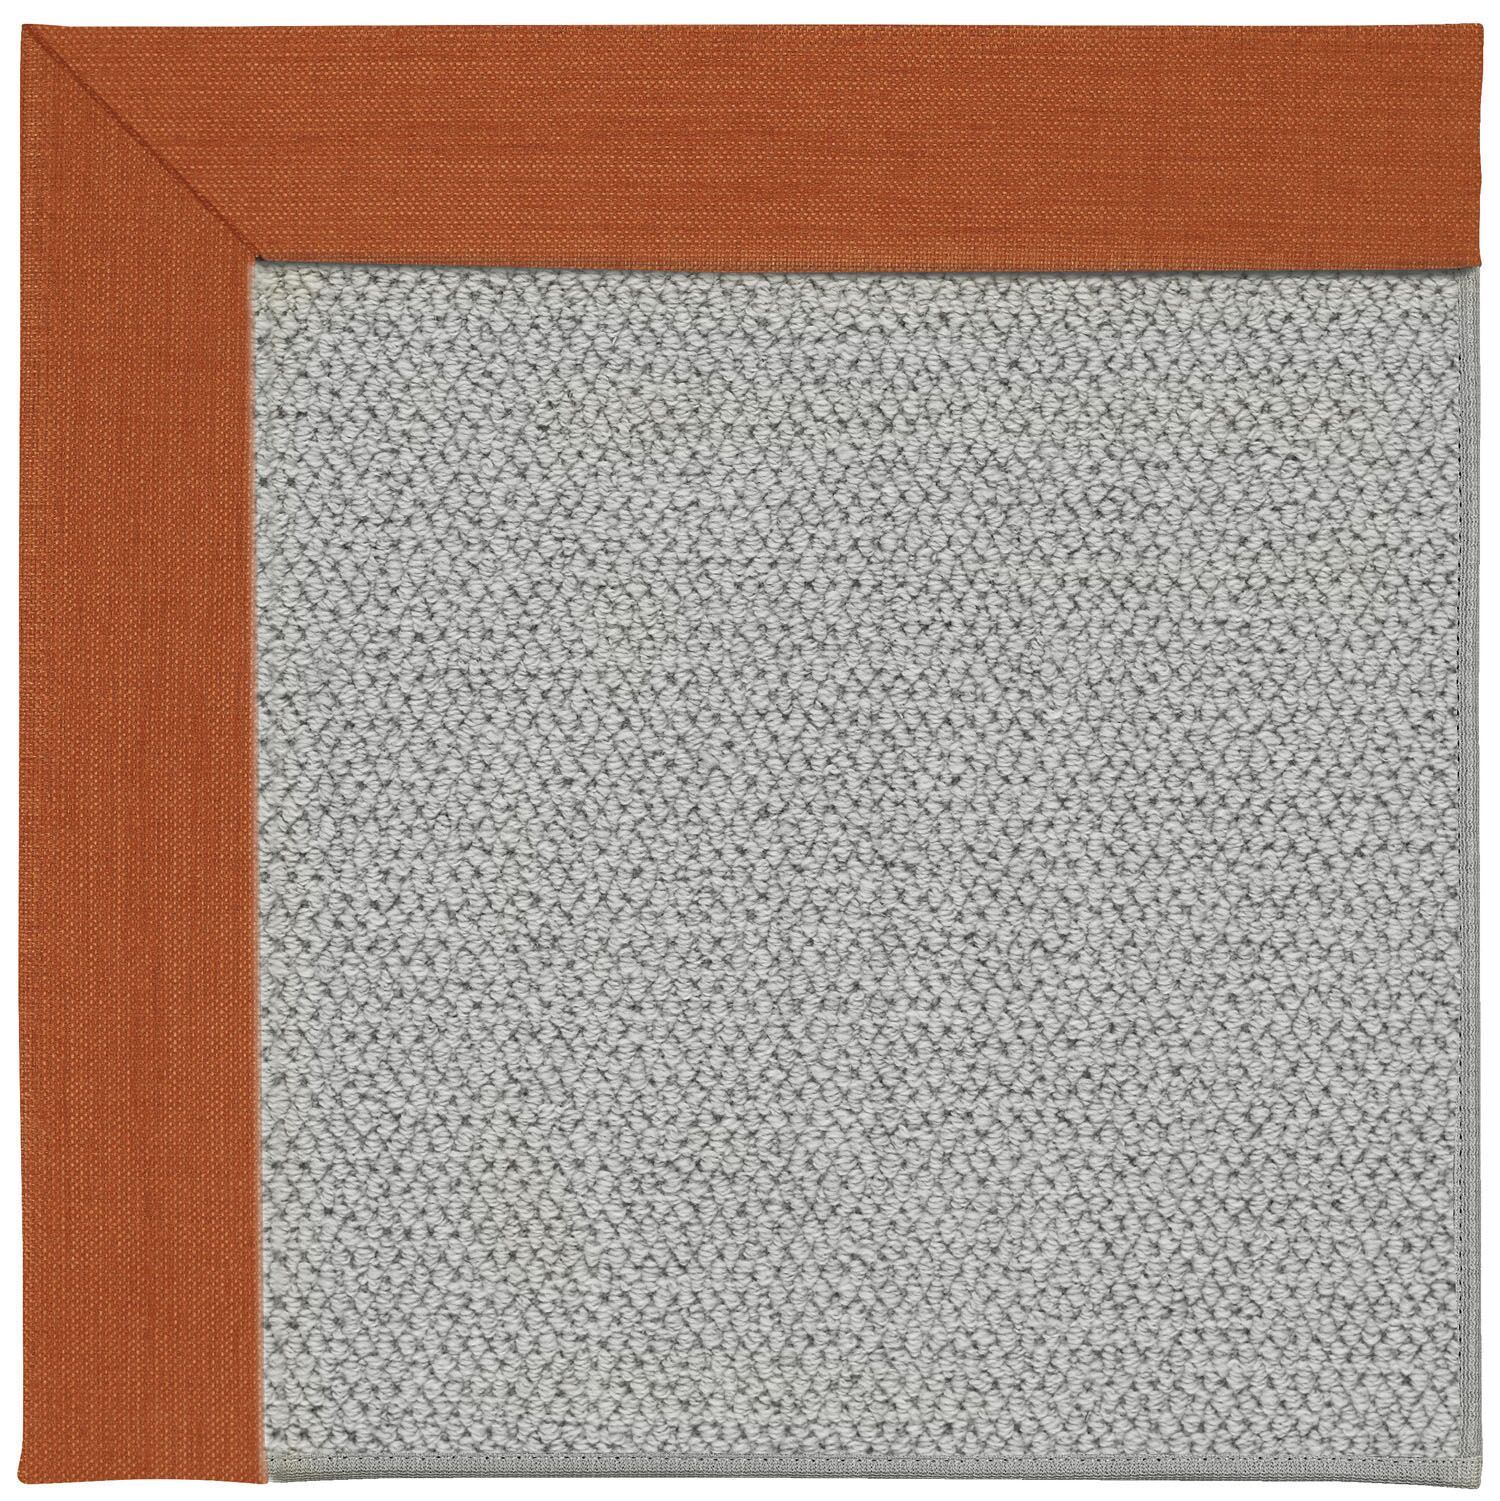 Barrett Silver Machine Tufted Persimmon/Gray Area Rug Rug Size: Rectangle 3' x 5'